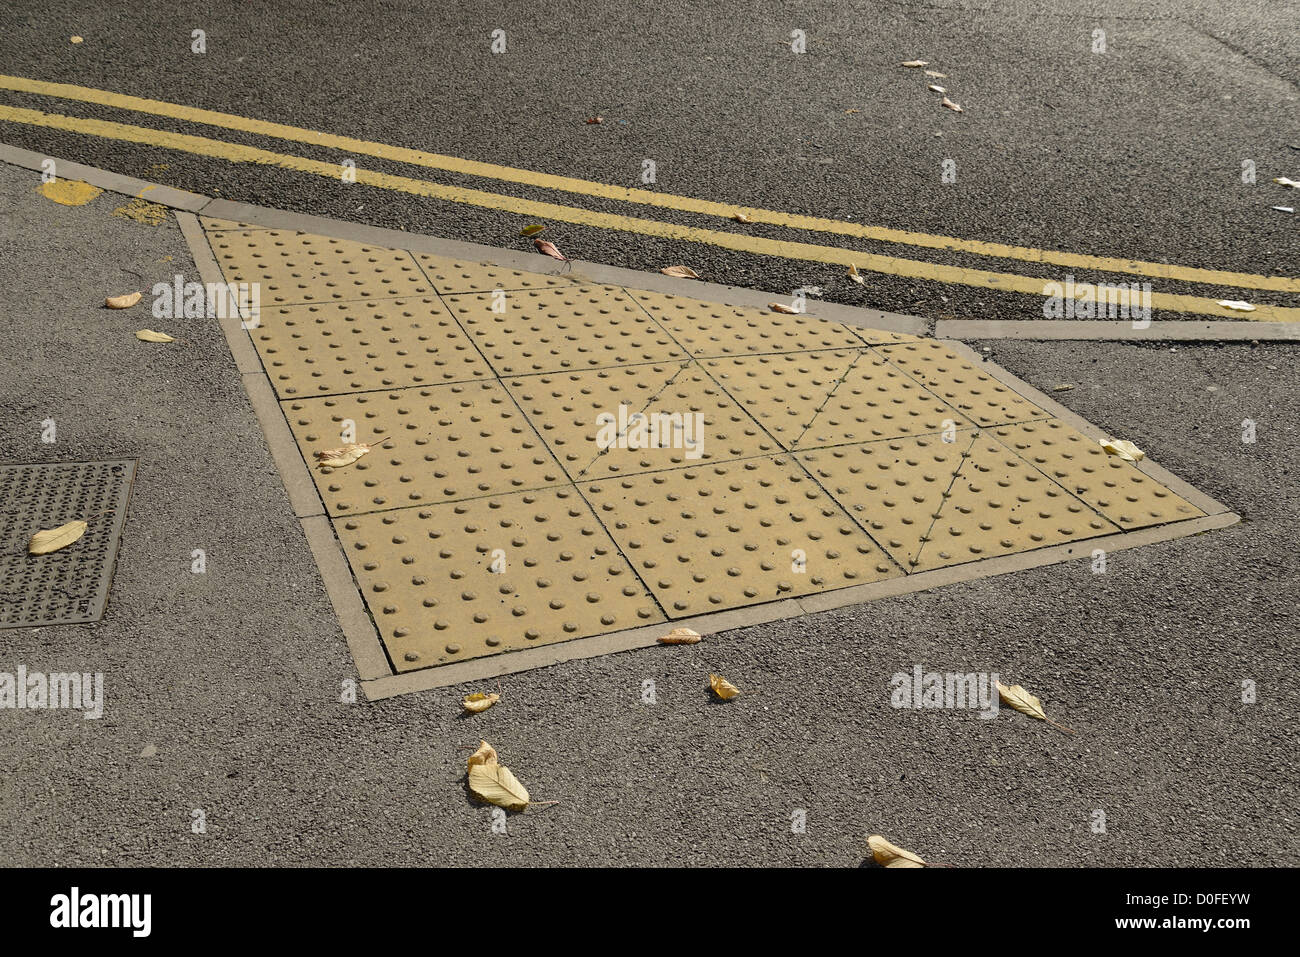 Tactile Paving At The Crossing Point Of A Road To Help